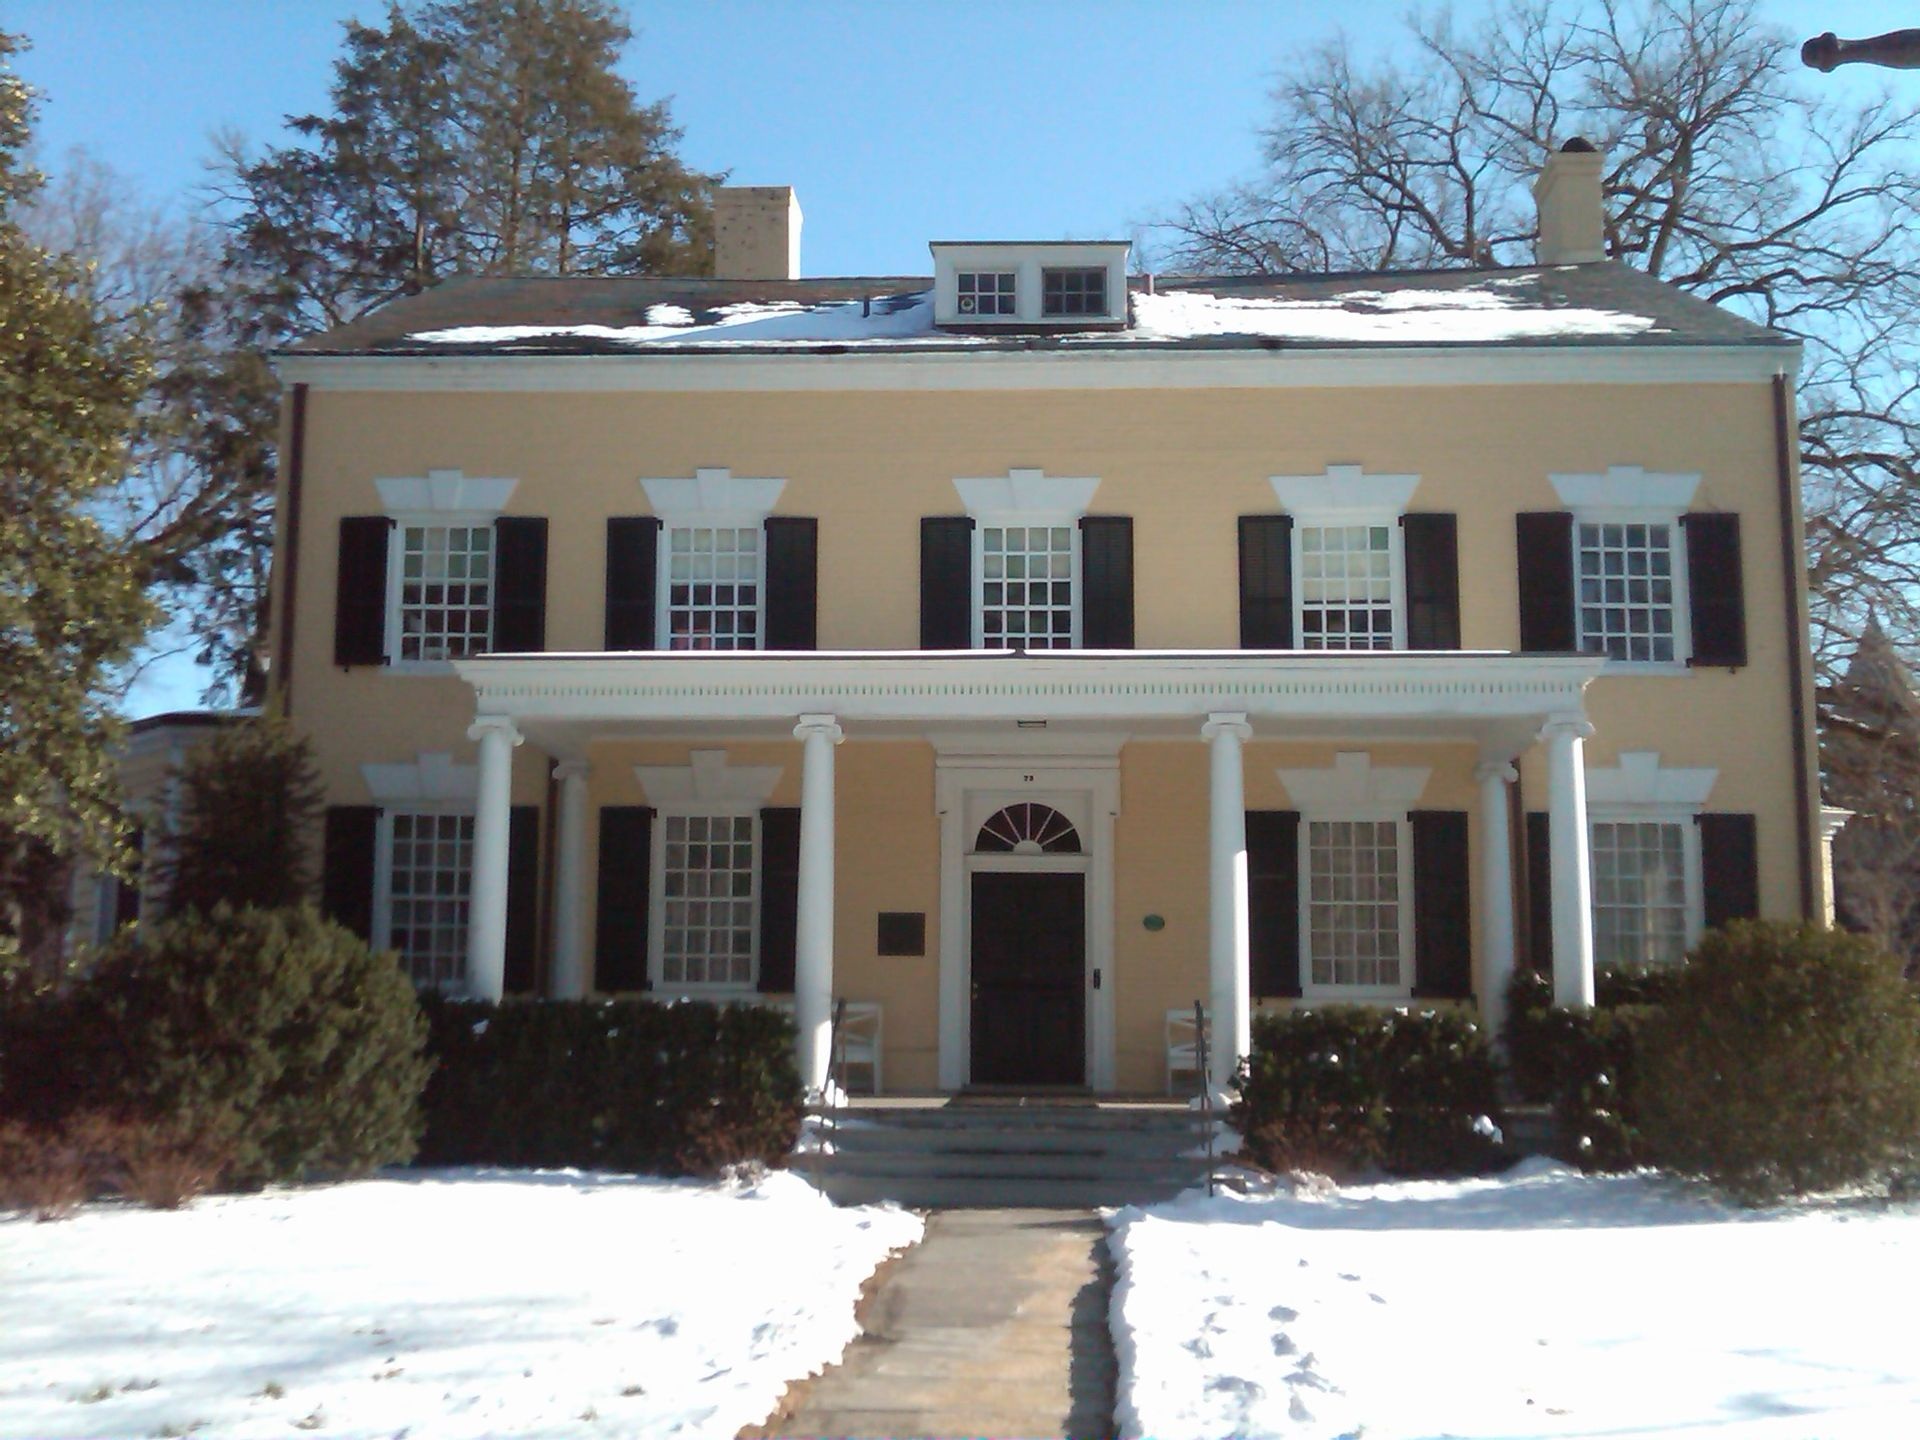 The MacLean House was built in 1756 and served as the residence of the College of New Jersey and later Princeton University presidents.